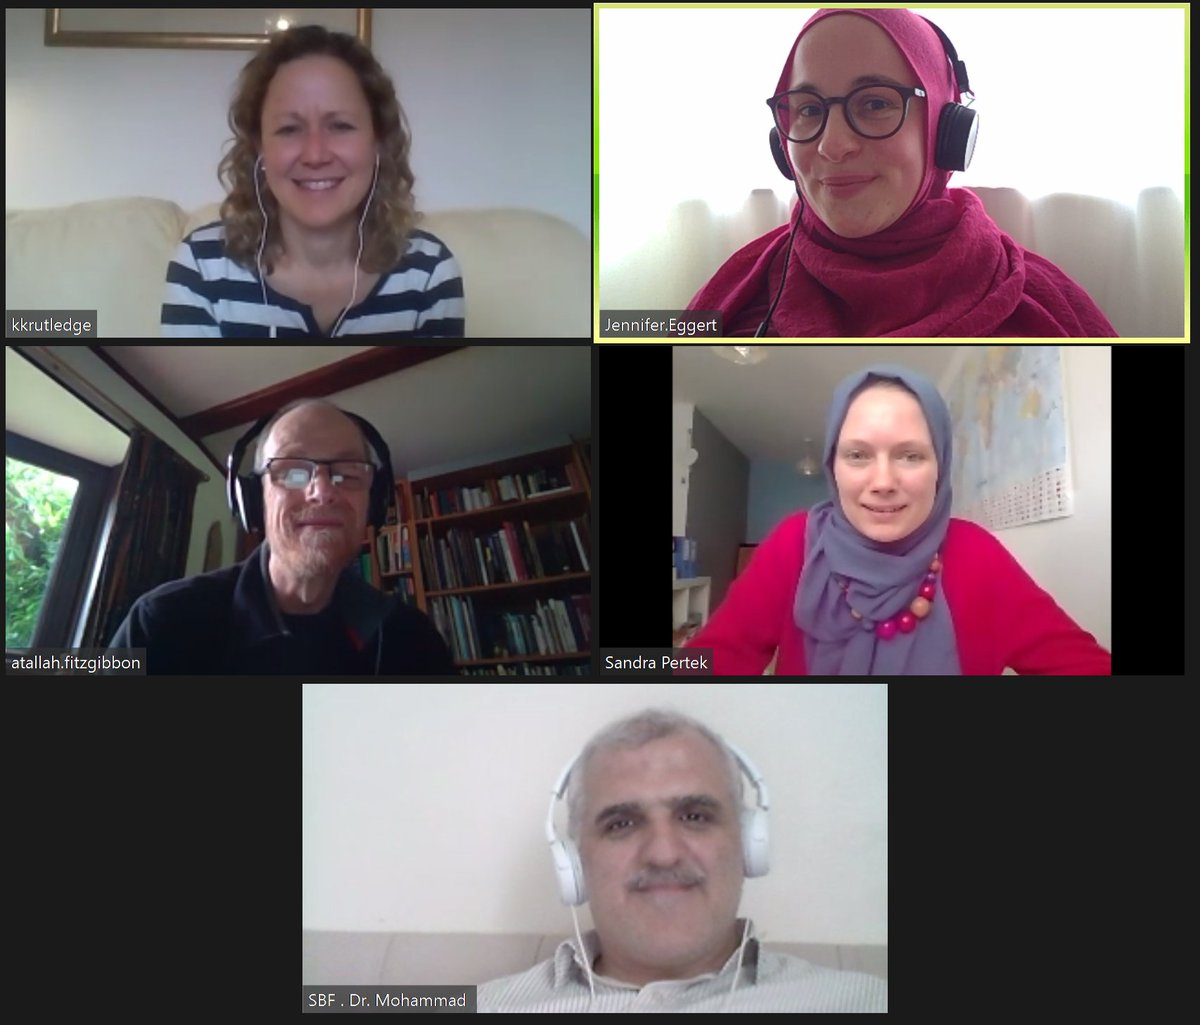 And it's a wrap! Just finished the last day of our (virtual) workshop on #gender, #faith & #MHPSS  It's so good to see how far this project (that formally started more than a year ago) has come...pic.twitter.com/UYz3OBDOFQ